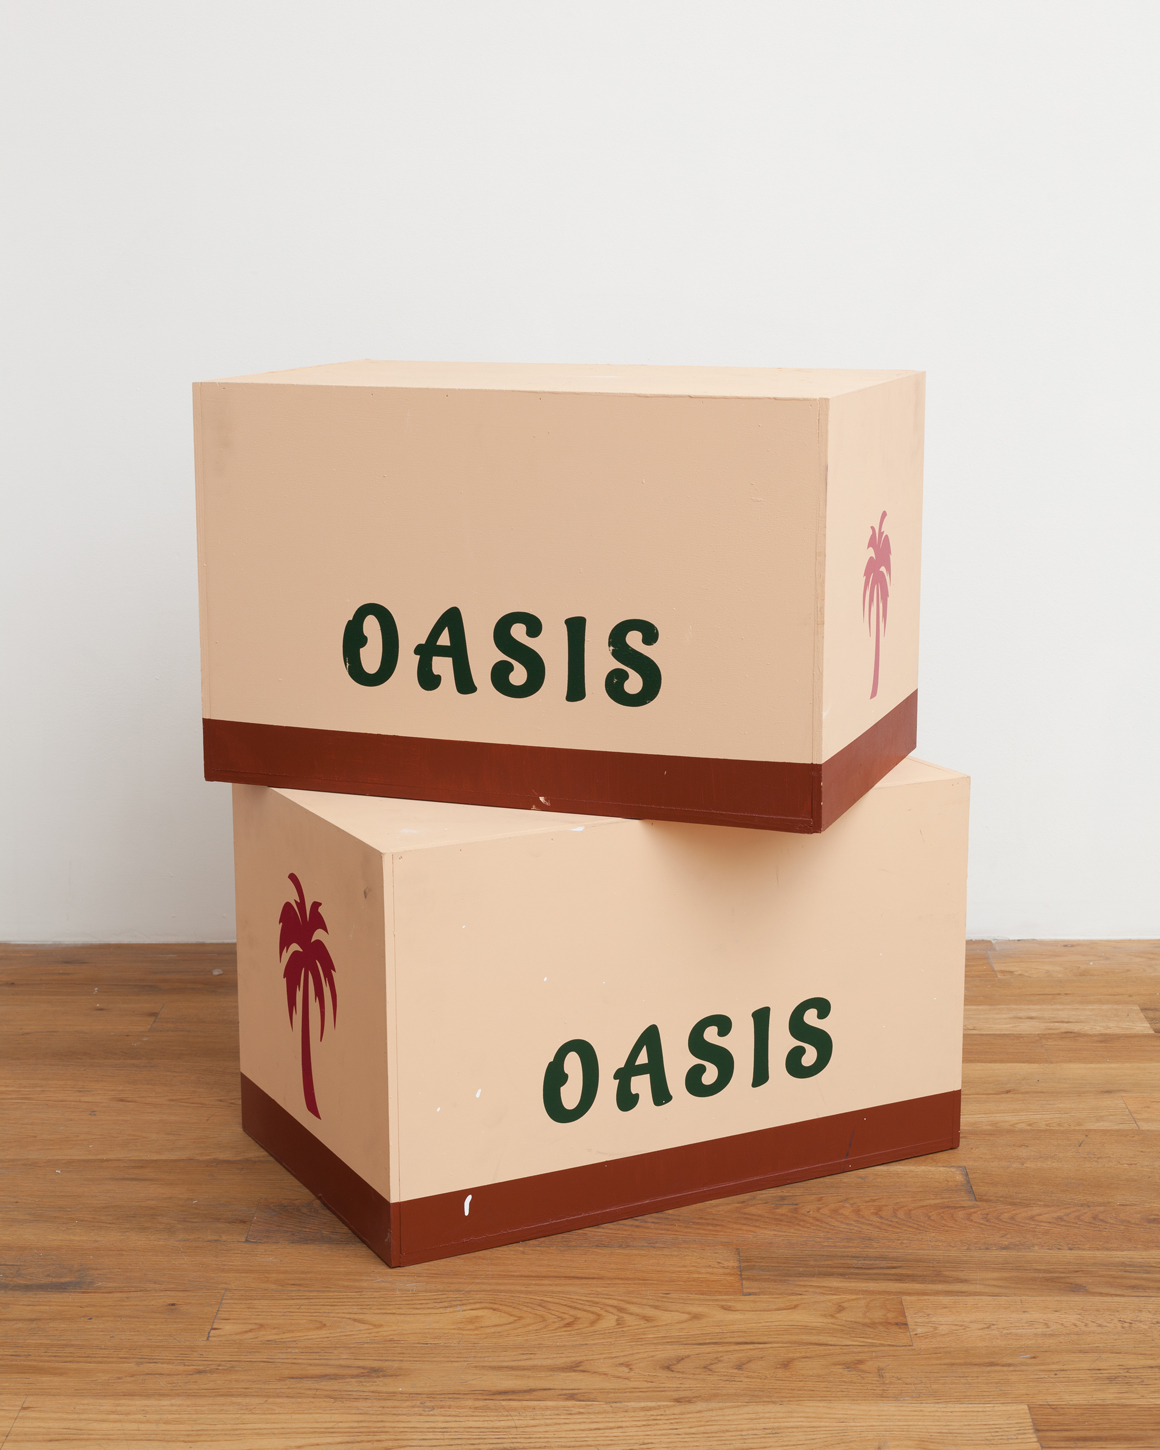 <p><em>Oasis Boxes (Sculptural Teaser Trailer for a Future Show, Presently Past)</em>Edition of AP 1 of 6 | Edition of 7 + 6AP<br>2015<br><a class='inquire' href='mailto:info@gildargallery.com?subject=Artwork Inquiry ASTA0007&body=I am interested in finding out more about Oasis Boxes (Sculptural Teaser Trailer for a Future Show, Presently Past) by Adam Stamp'>Inquire</a></p>